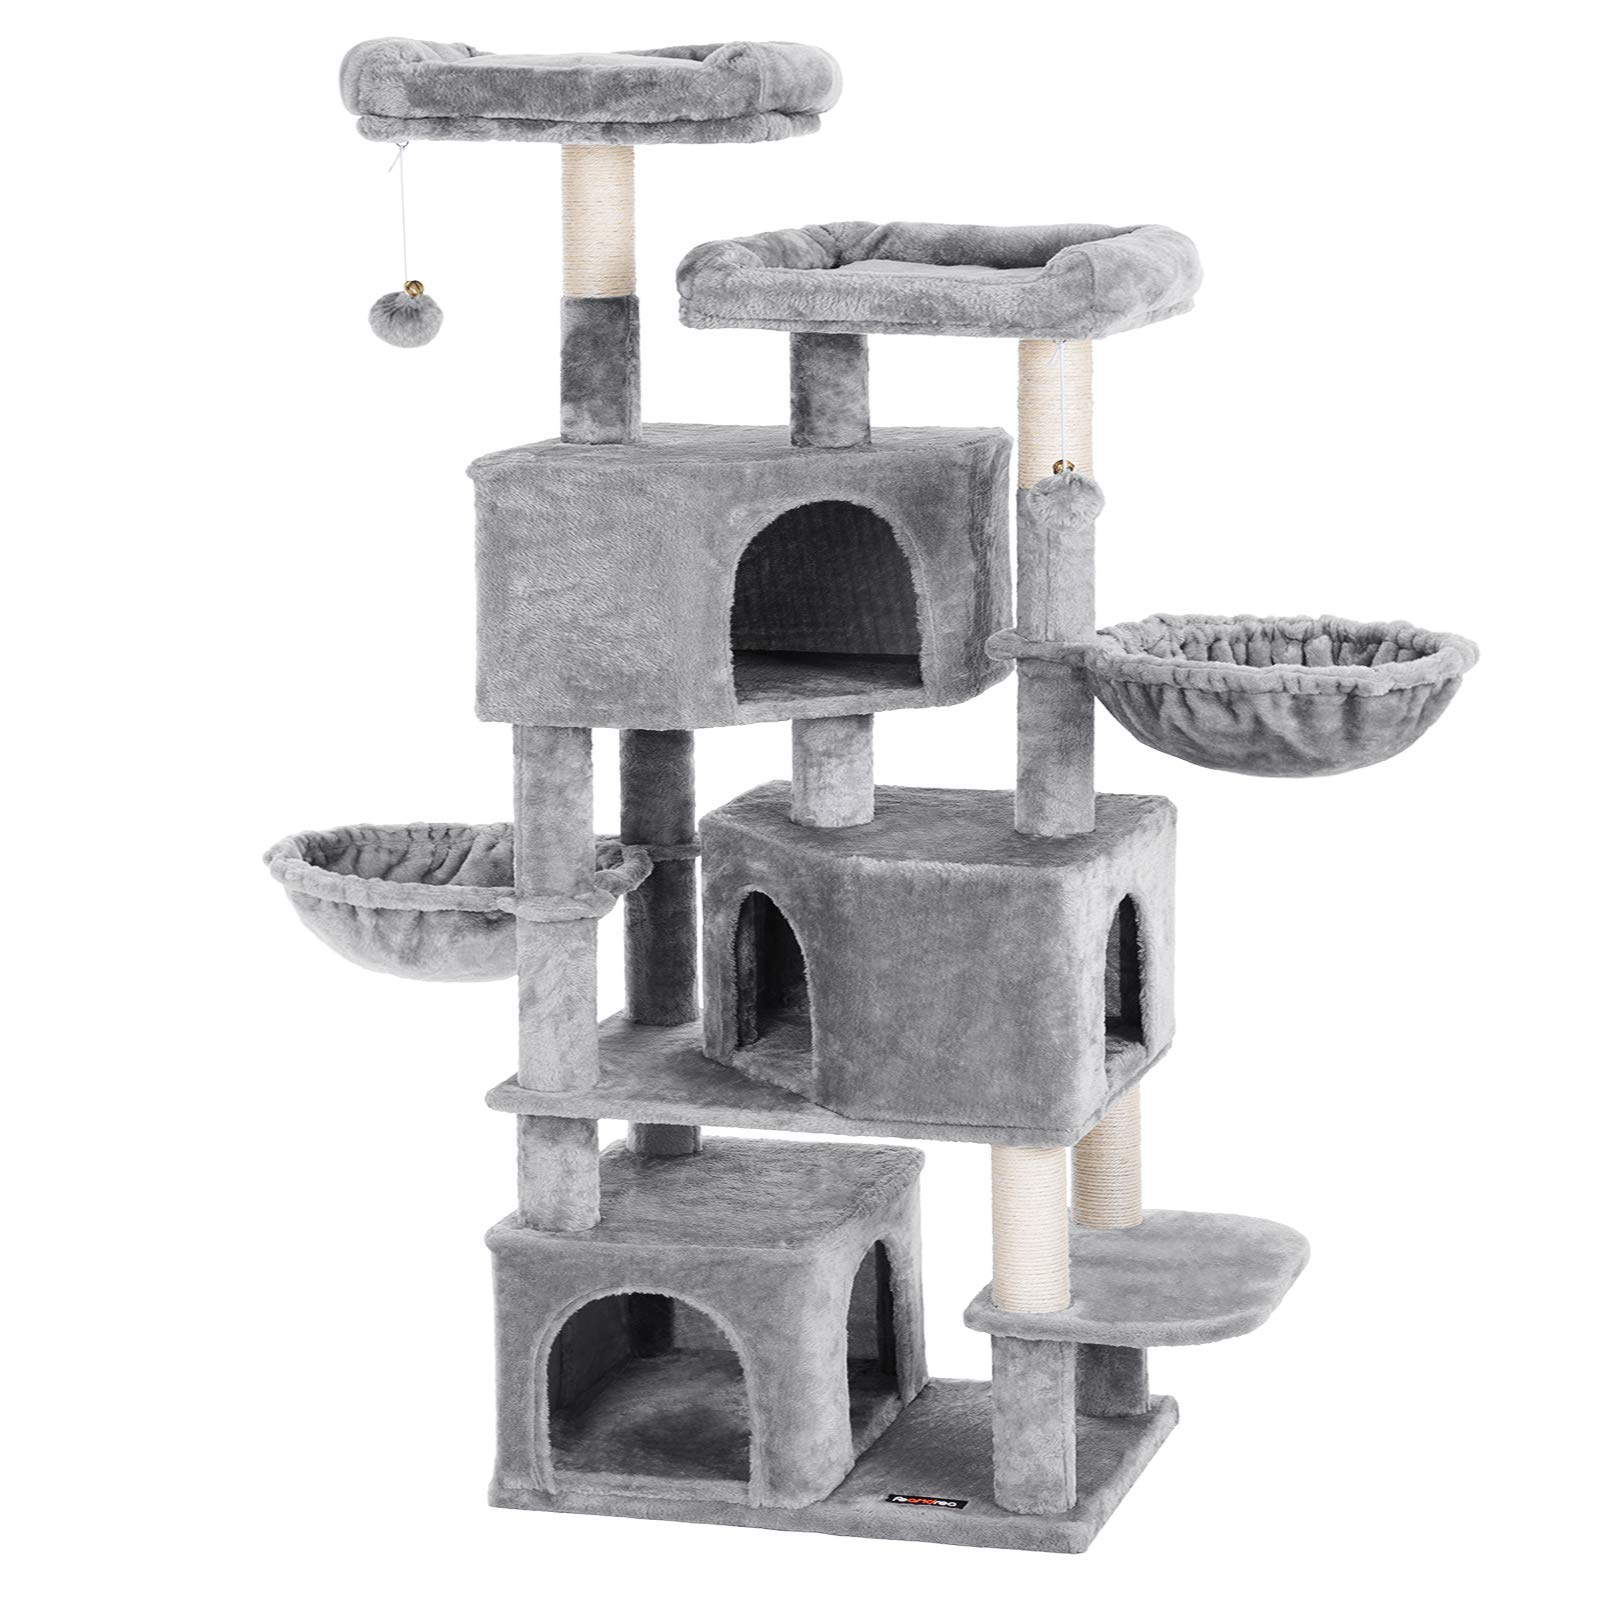 FEANDREA Large Cat Tree with 3 Cat Caves, Multilayer Cat Tower Suitable for Kittens, Old Cats, Stable Light Gray Cat Condo, 21.7 x 15.7 x 64.6 Inches UPCT98W by FEANDREA